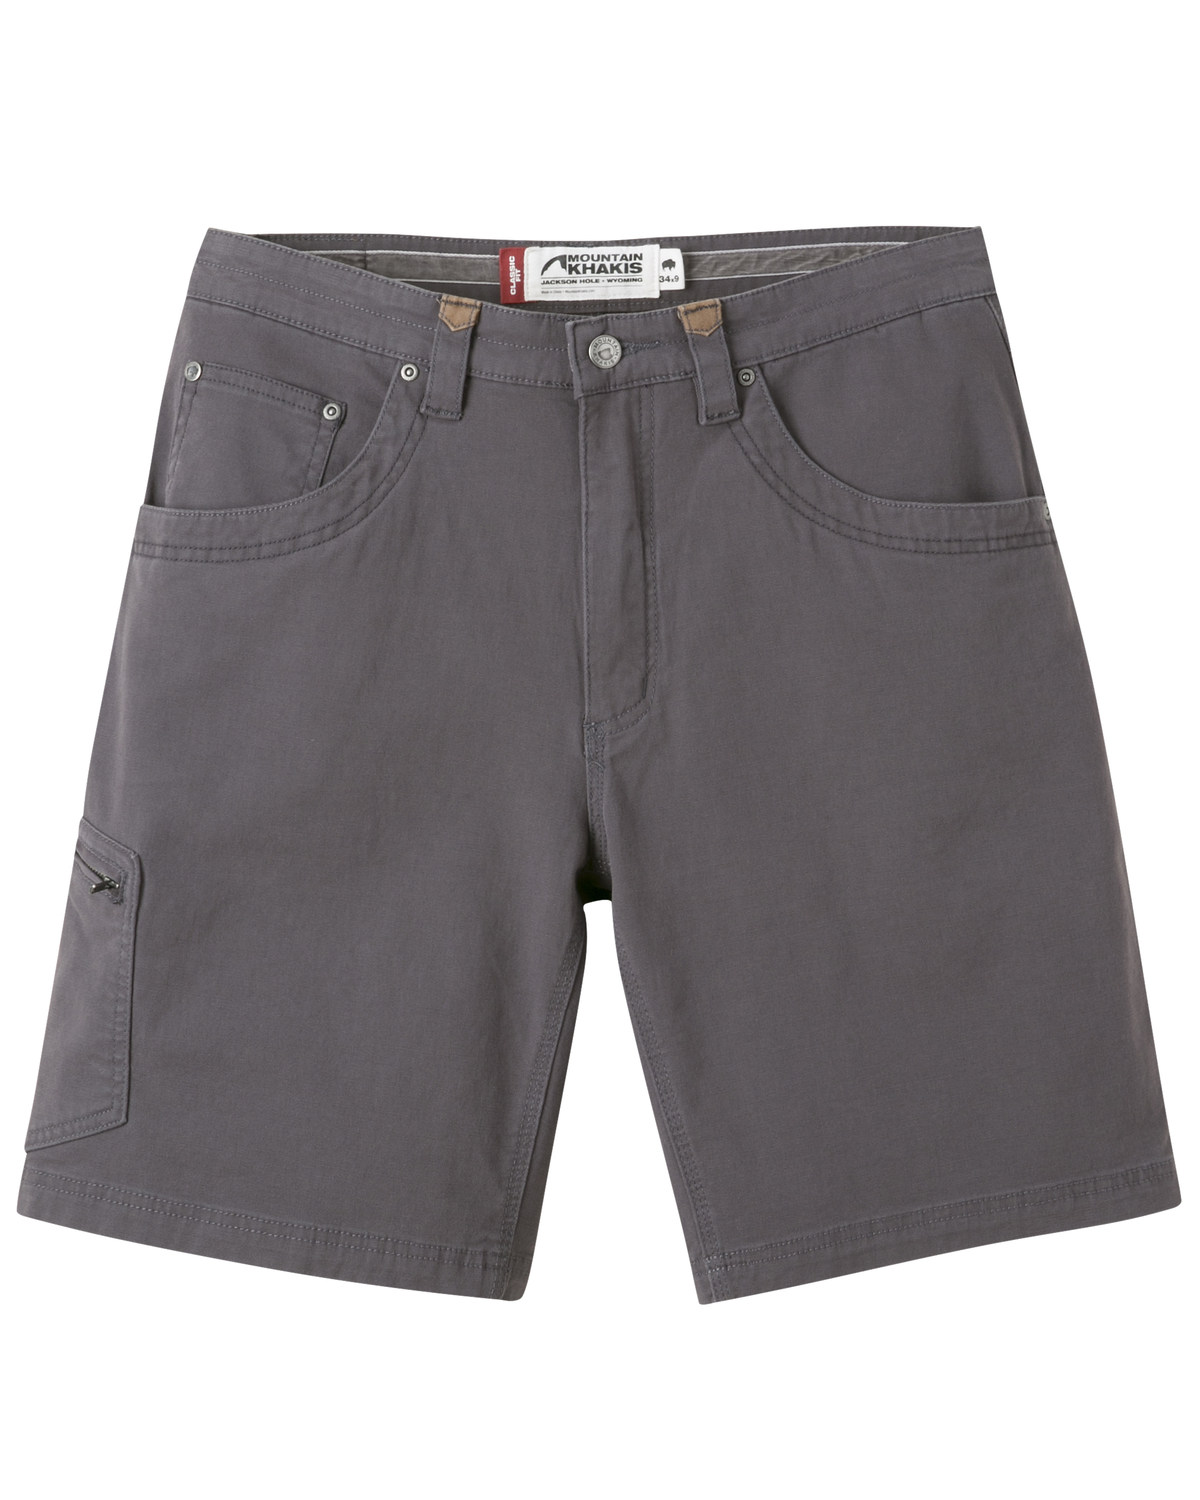 5c7b0a48 Zoomed Image Mountain Khakis Men's Classic Fit Camber 107 Shorts - 11